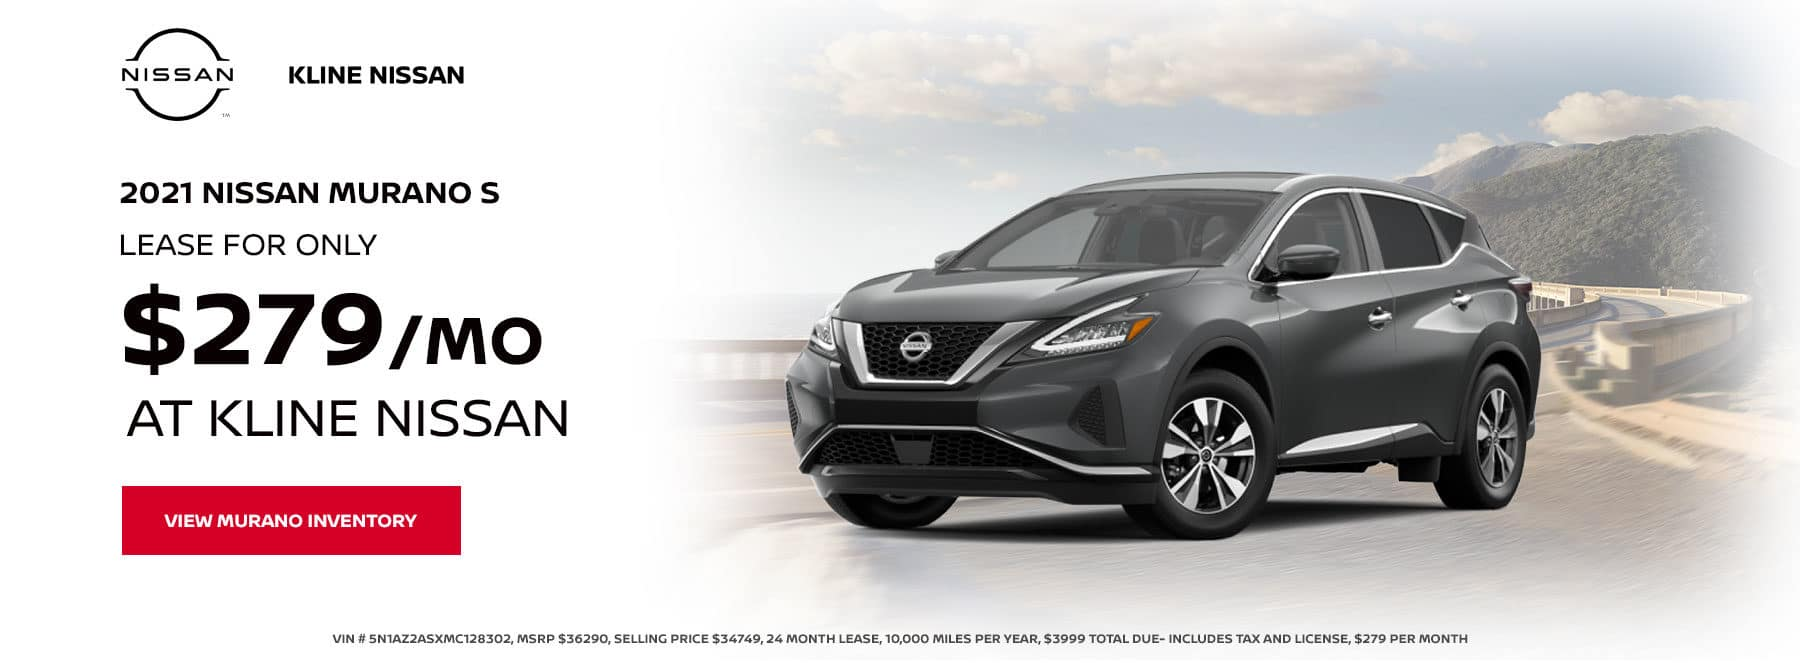 2021 Murano S, Lease for $279 per month